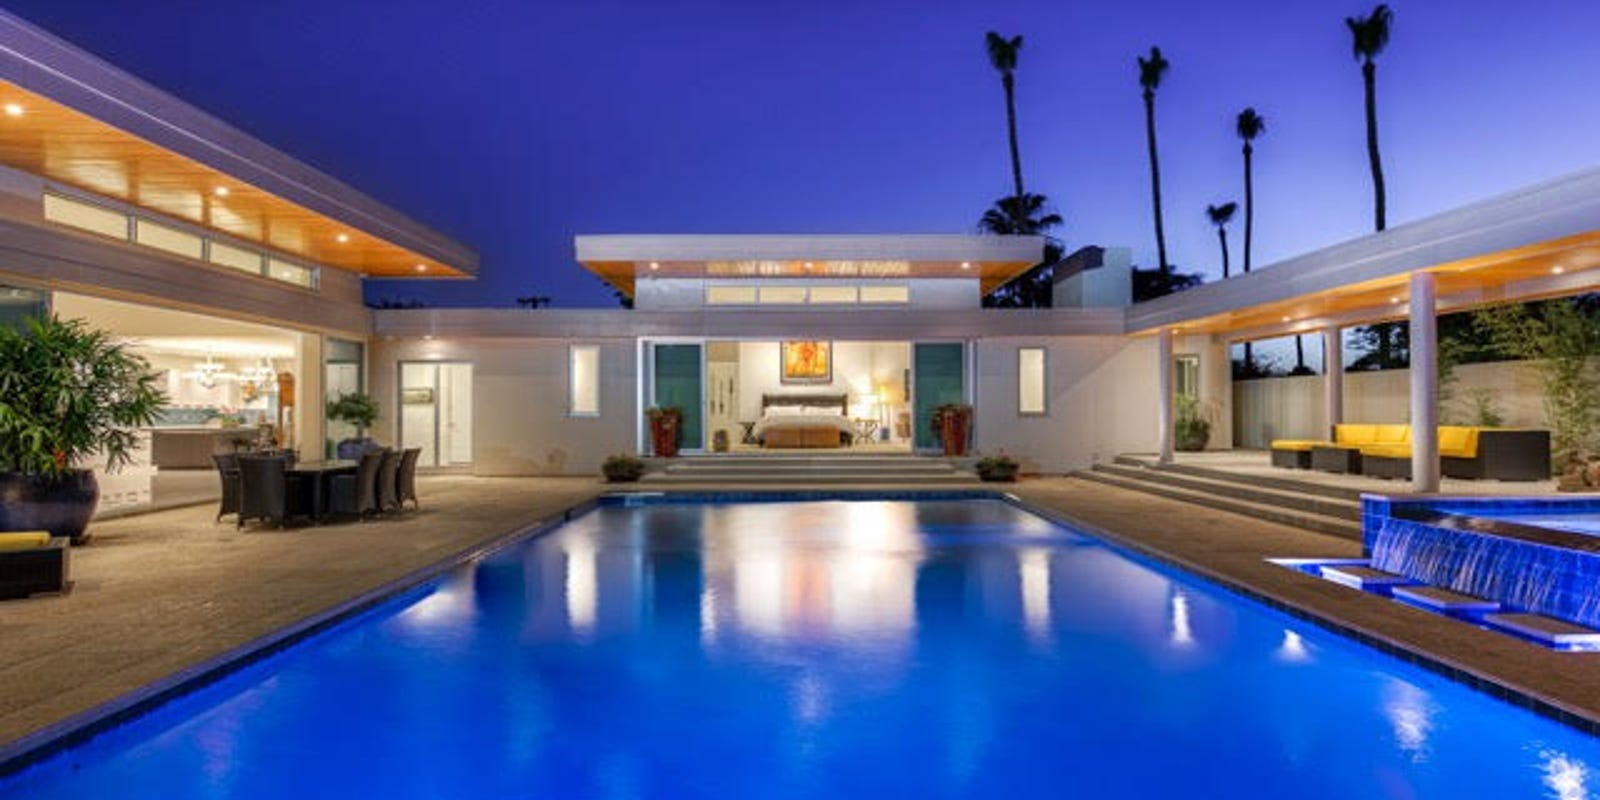 Phoenix ranch remodel makes clic pool the centerpiece on house floor plans with indoor pool, house plans with enclosed pool, home plans with interior pool, inexpensive home indoor pool, custom home with indoor pool, luxury home plans with indoor pool, house plans with swimming pool,